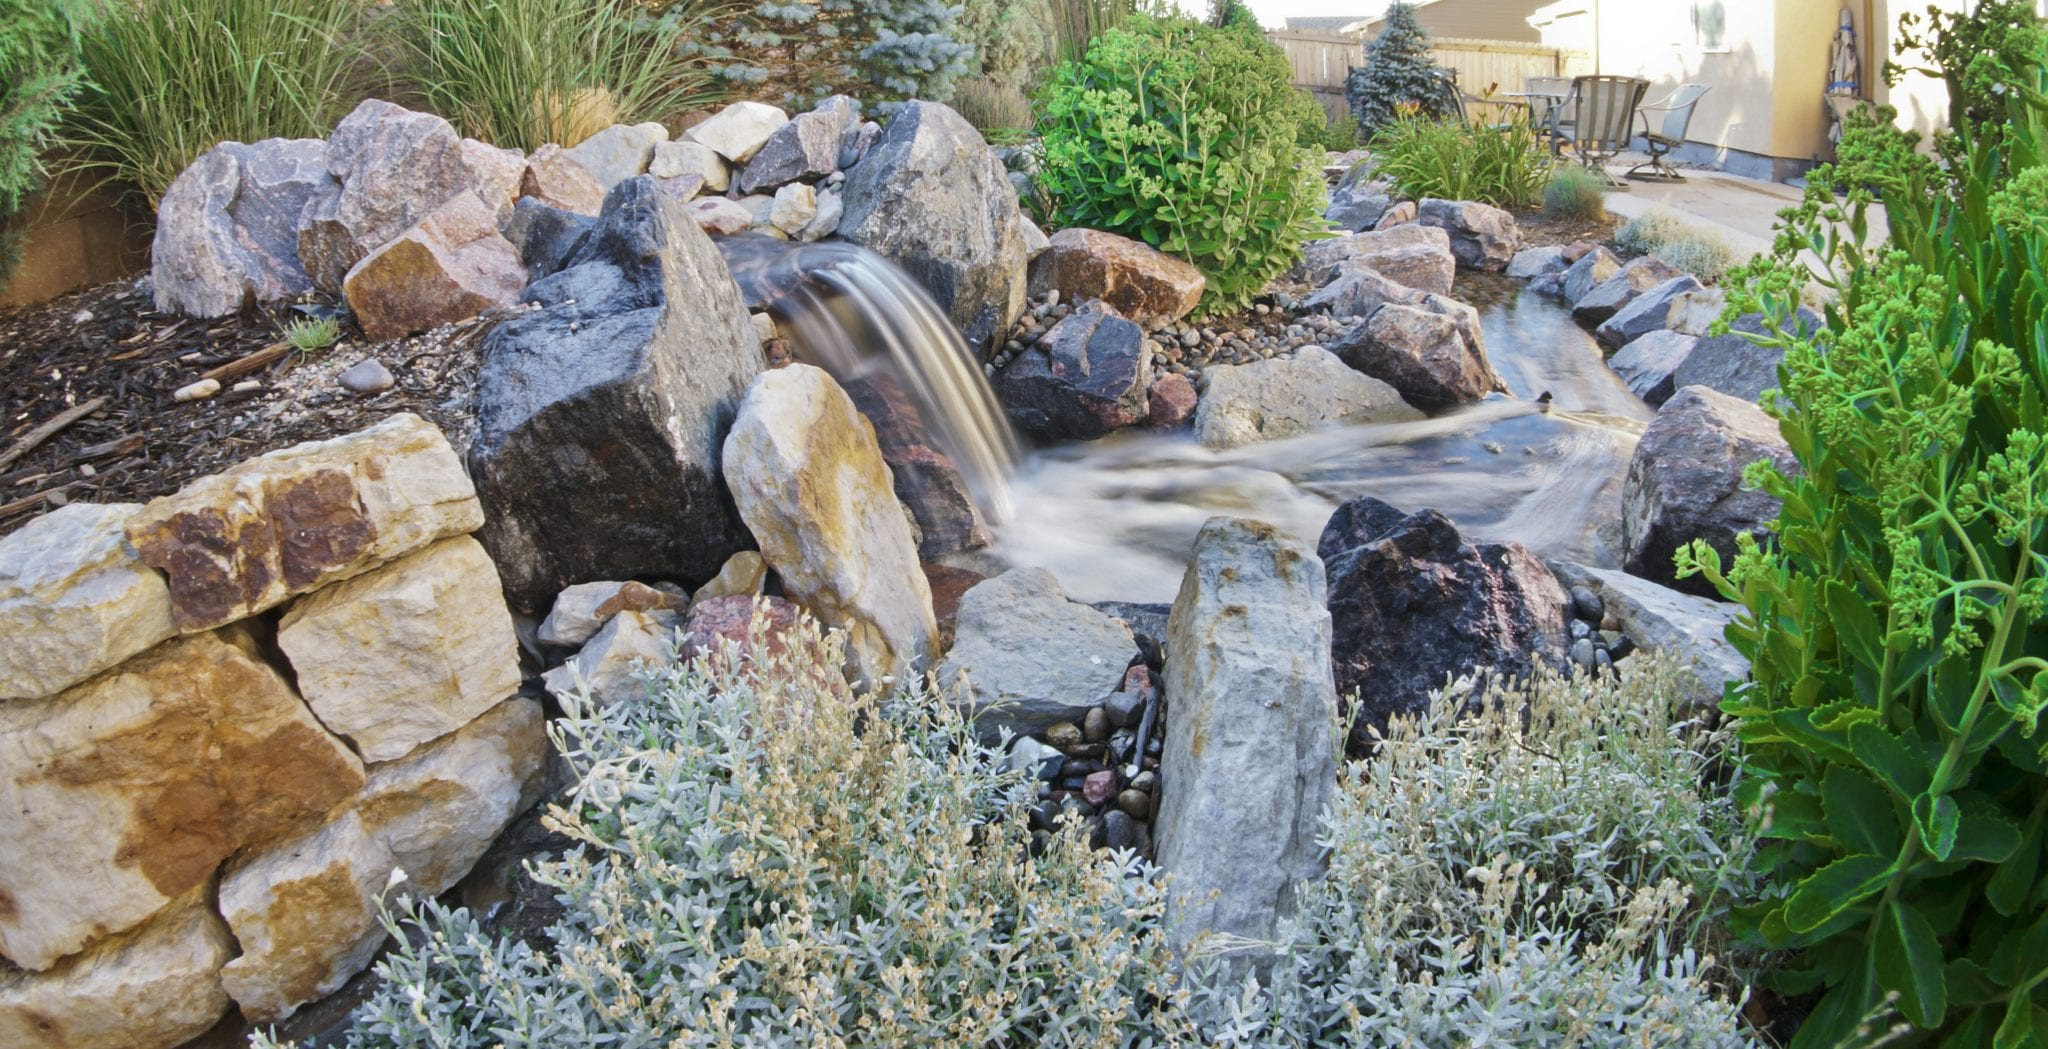 20 Landscaping Ideas For Small Backyards In Colorado Springs 20